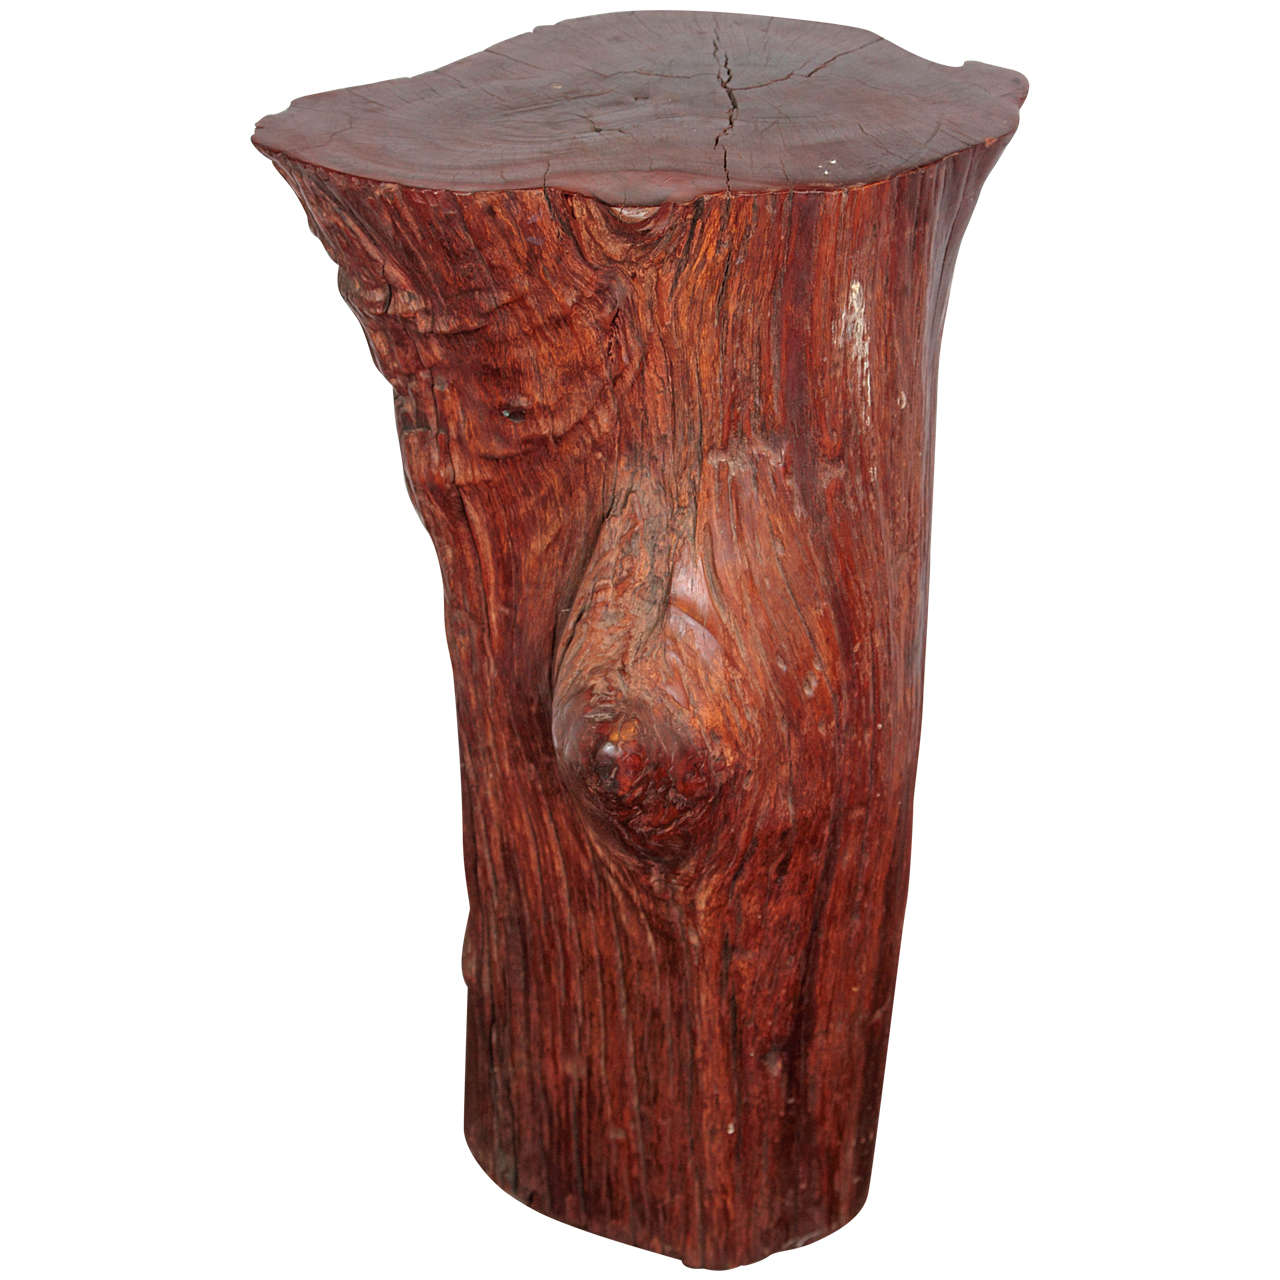 Organic Tree Trunk Table 29 Quot H For Sale At 1stdibs